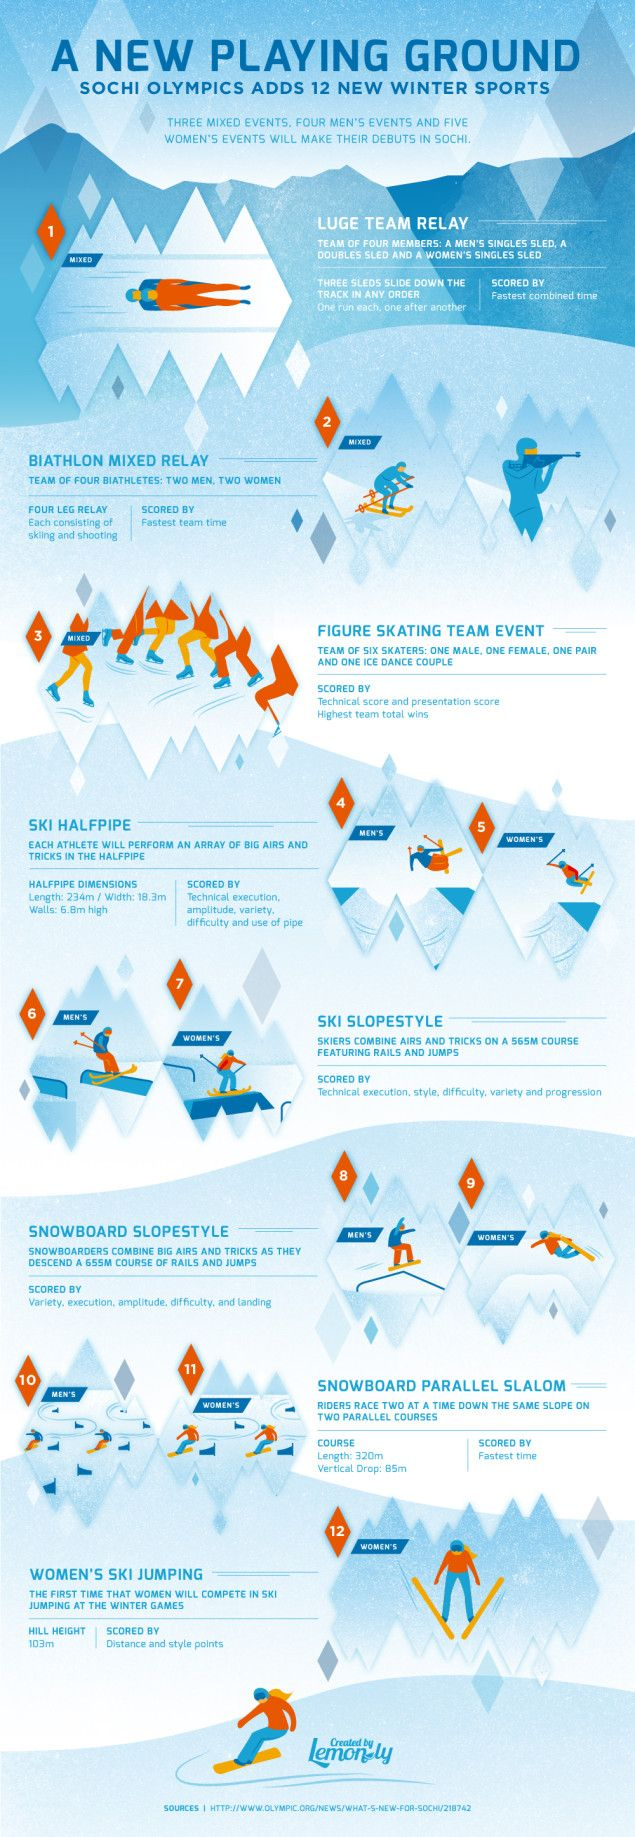 Are you ready for Sochi?! With the addition of 12 new Olympic sports in 2014, we decided to illustrate the new events and how they are scored in an #infographic